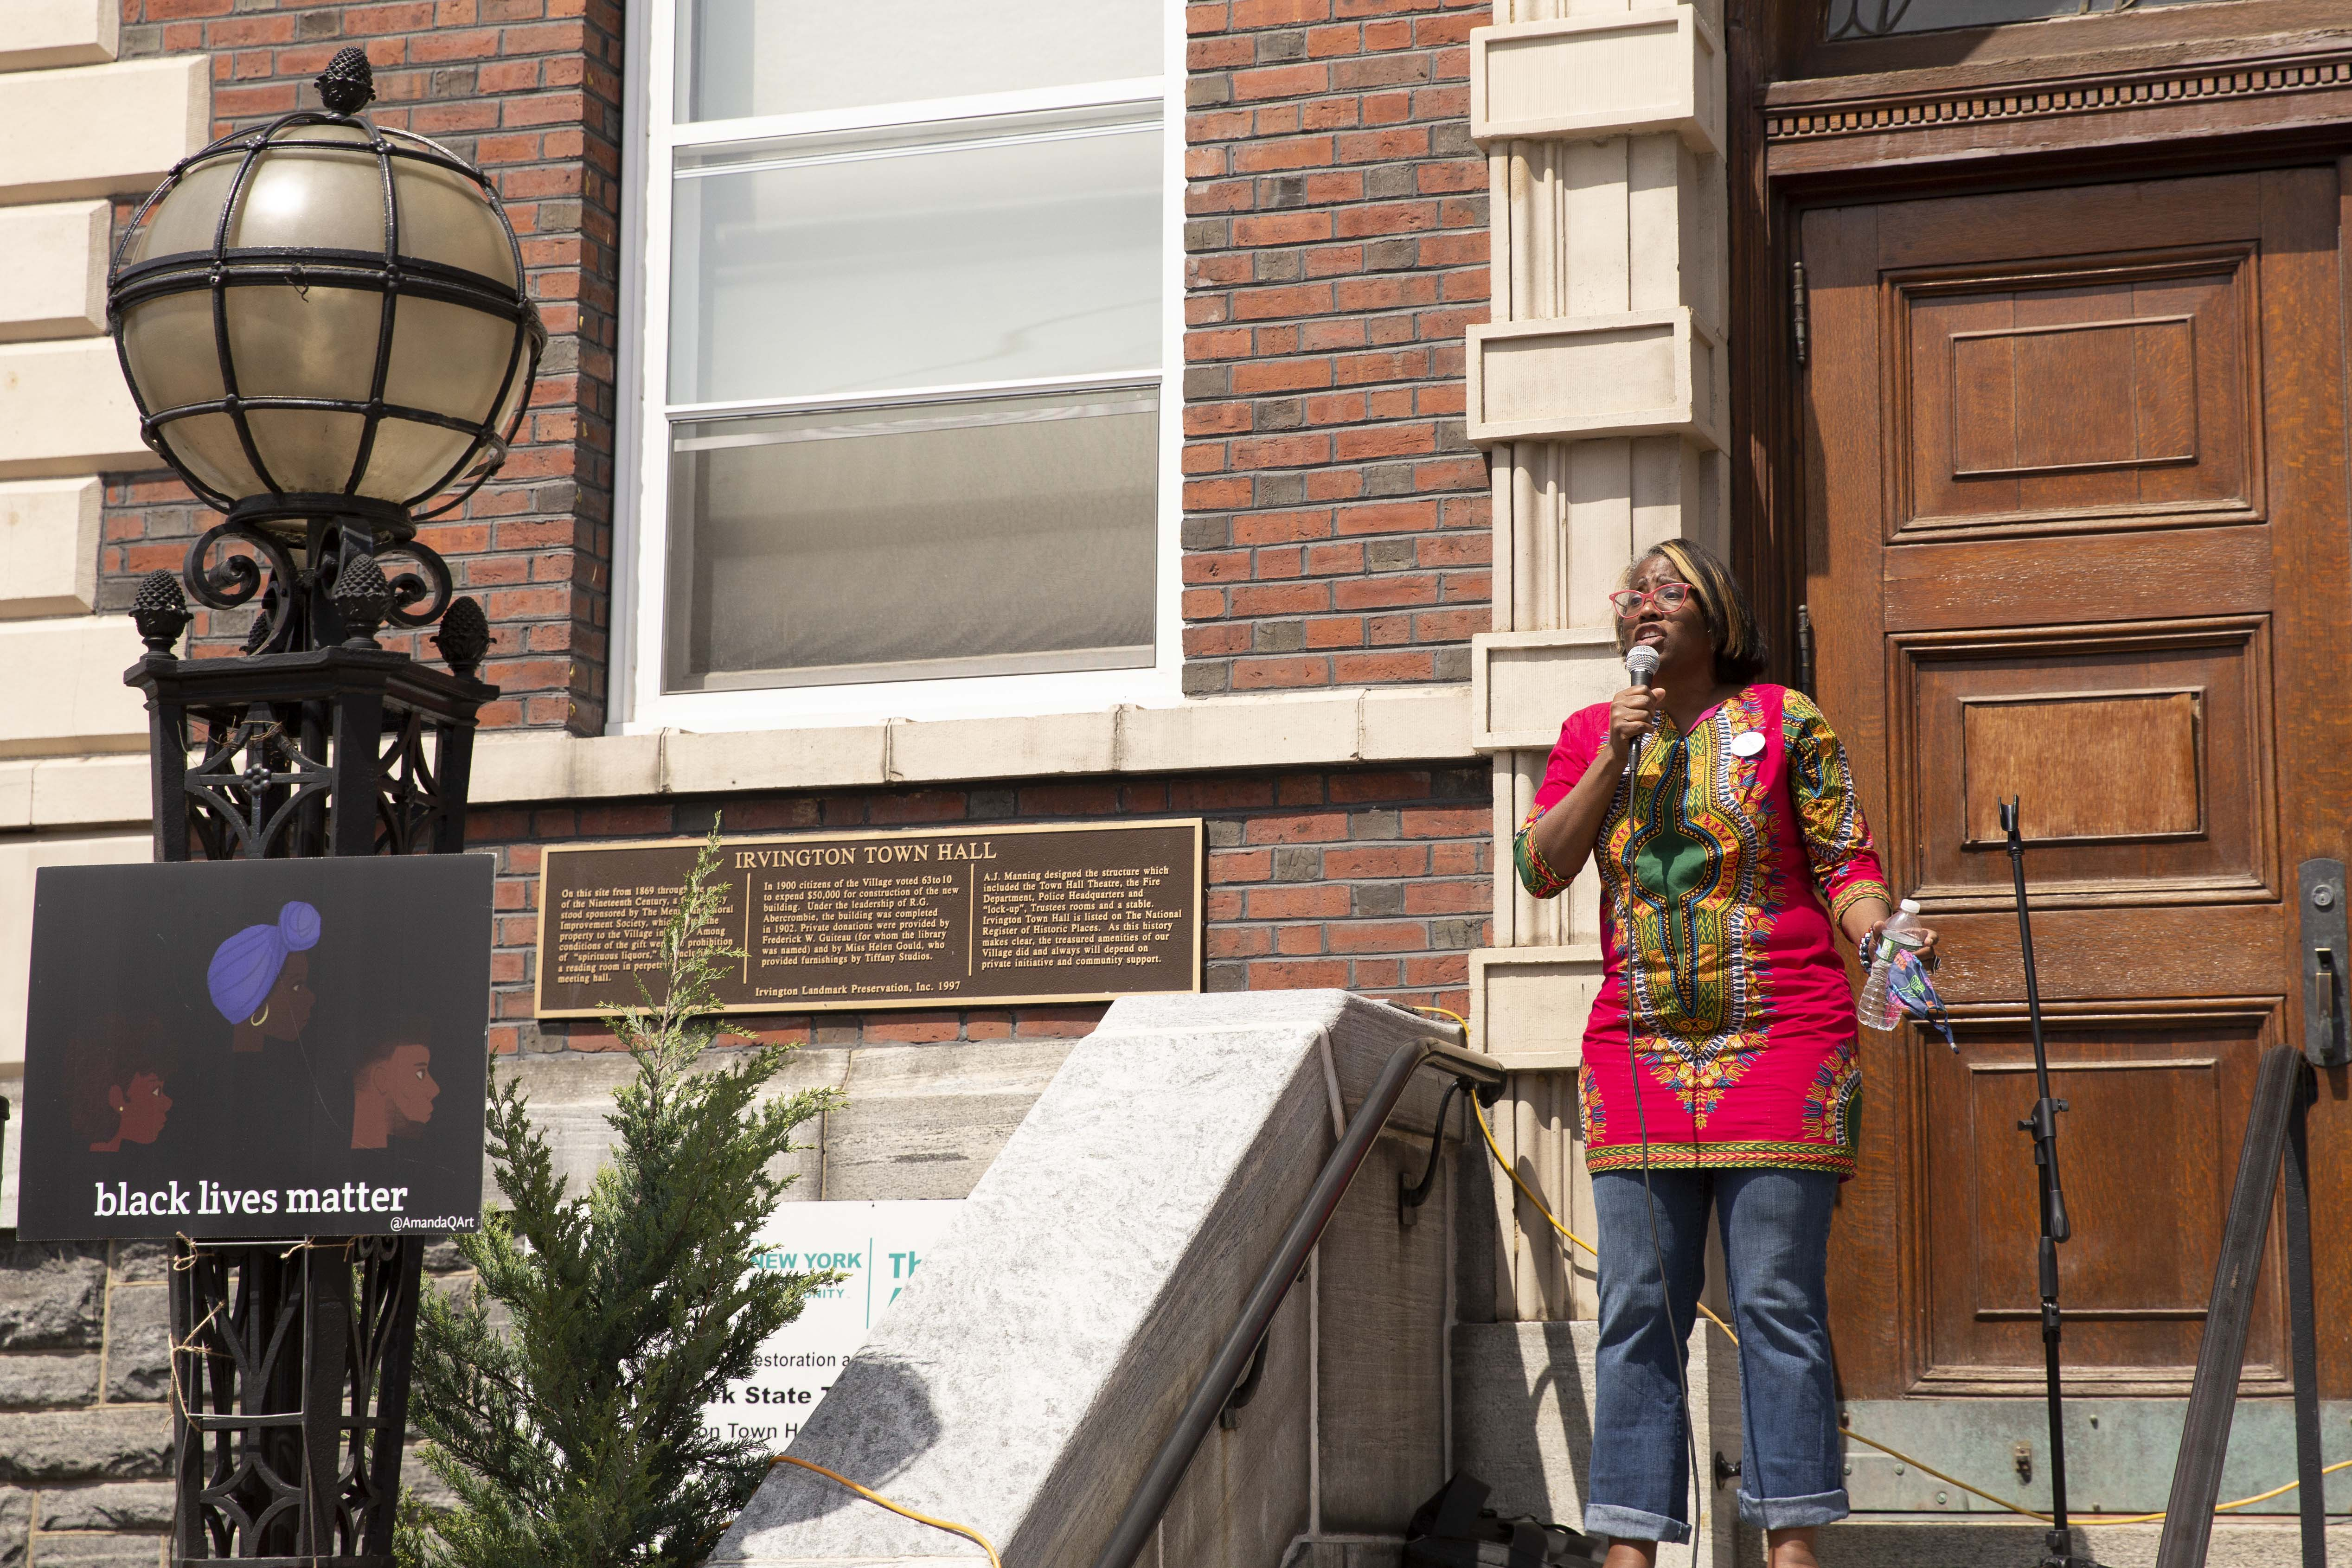 Tasha speaking in front of Irvington Town Hall with BLM sign